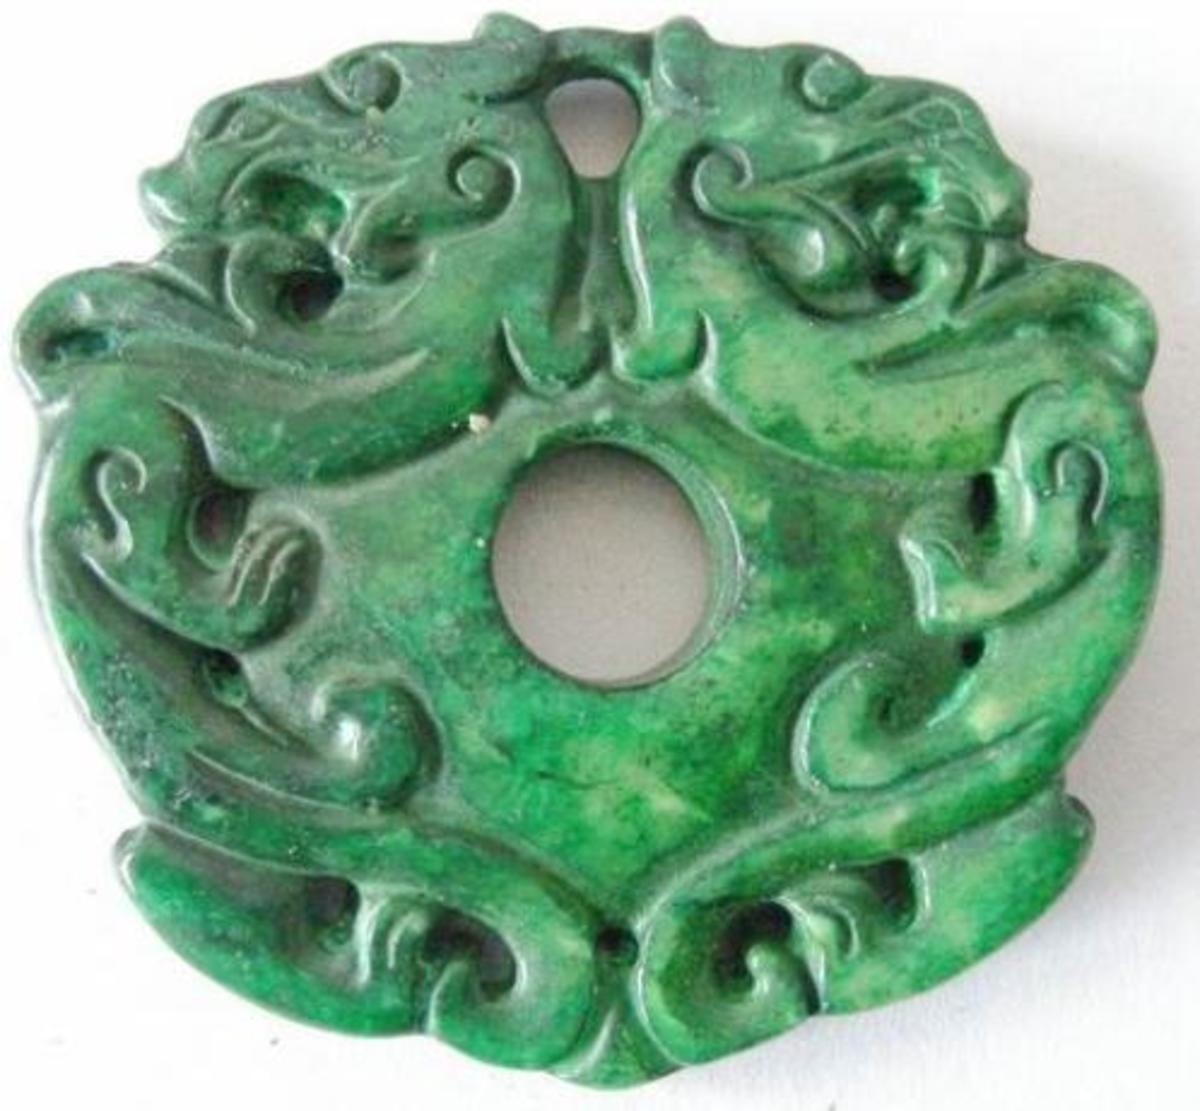 Chinese Jade: Culture, Meaning & Buy Online